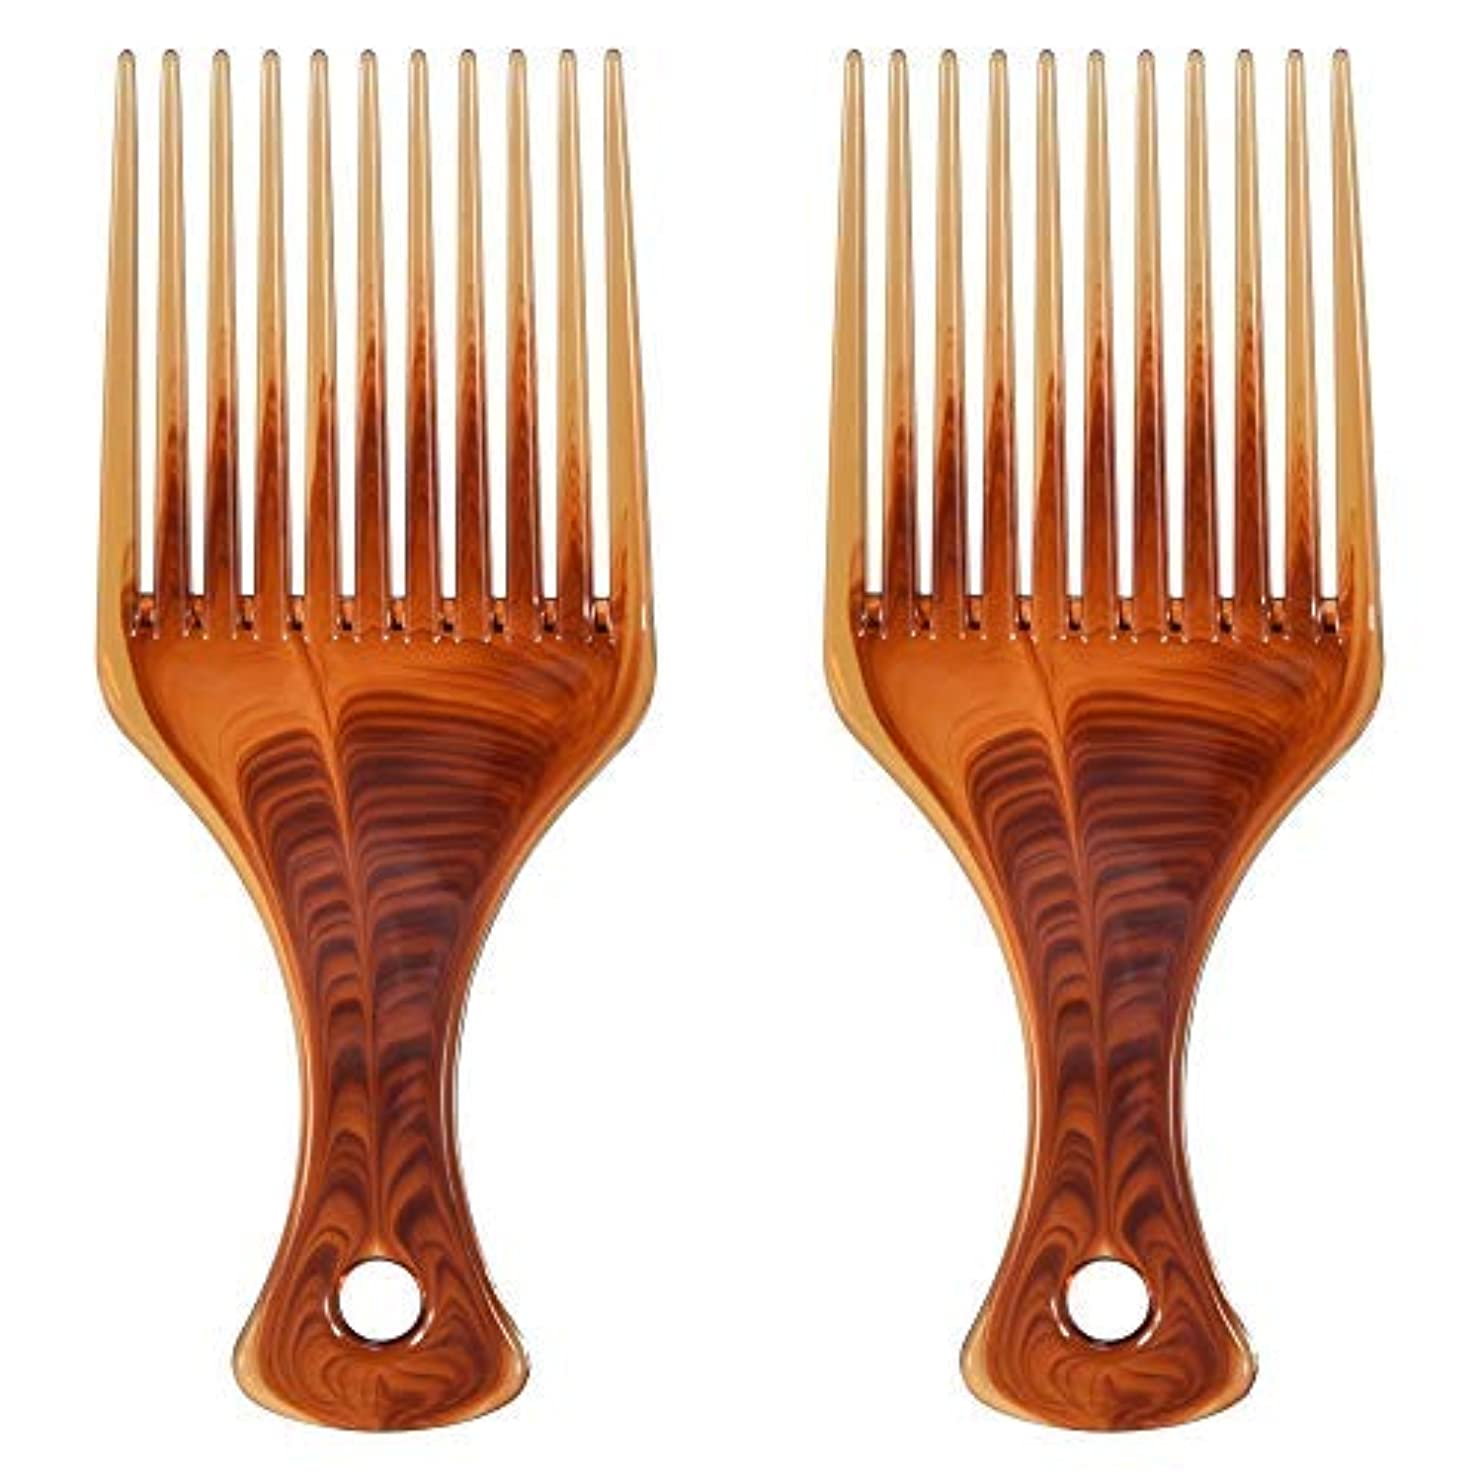 問い合わせるジャンプする参加するMosuch Hair Pick, 2pcs Super Smooth Picks Comb Hairdressing Wide Tooth Modeling Big Tooth Comb [並行輸入品]